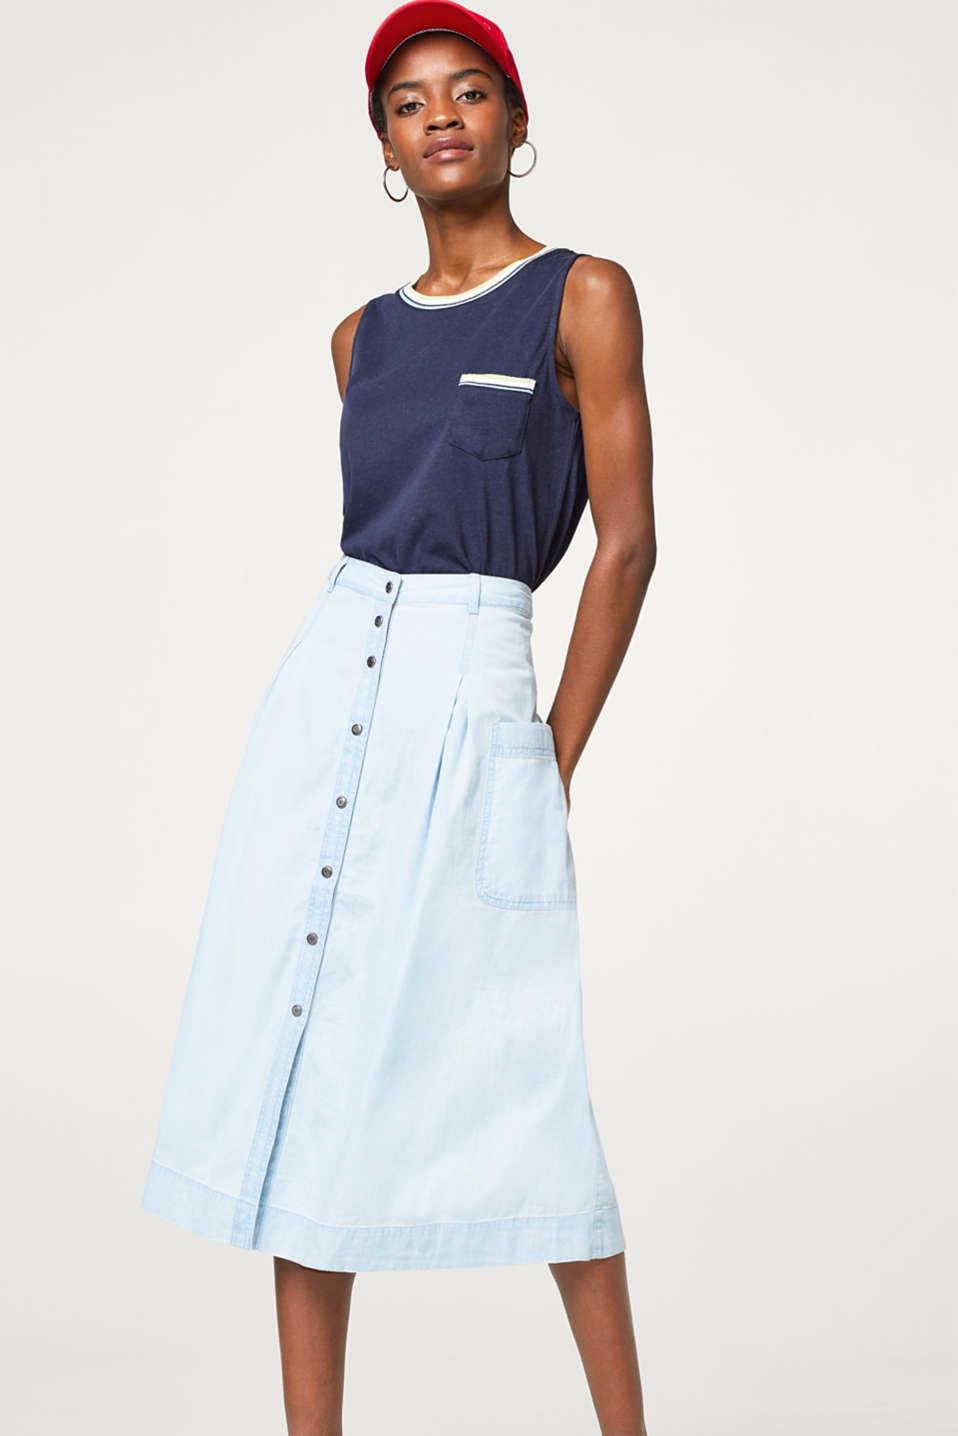 Esprit - Midi skirt in lightweight denim, 100% cotton